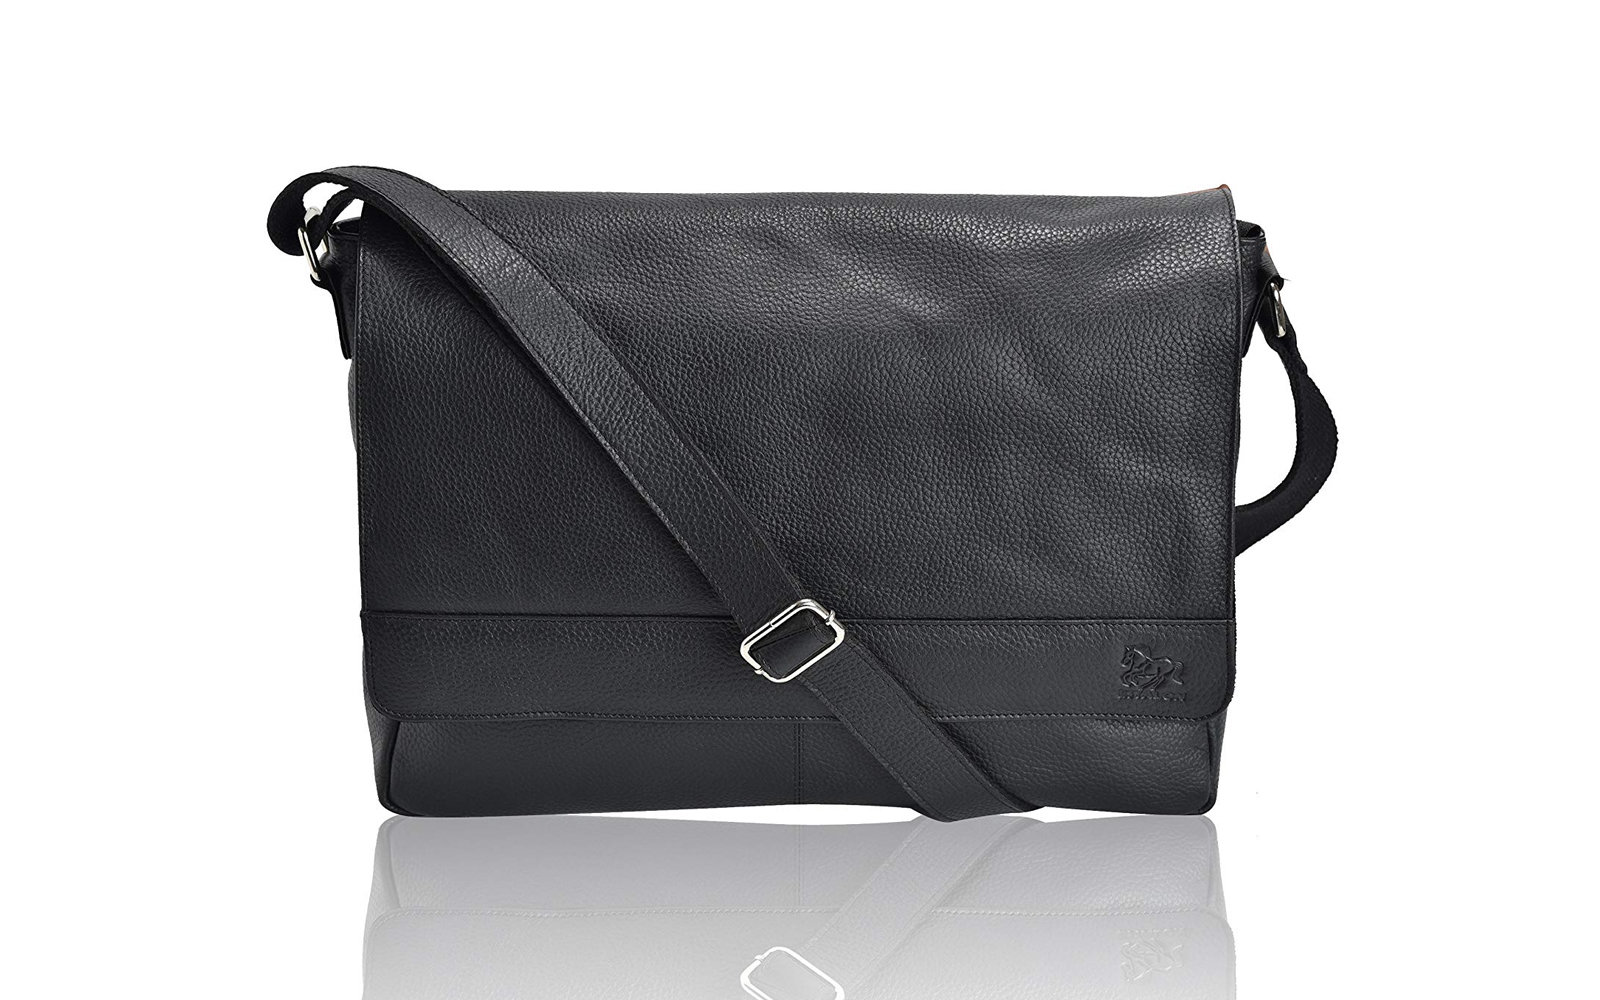 227c9ccbf7 The Most Wished-for Travel Bags on Amazon